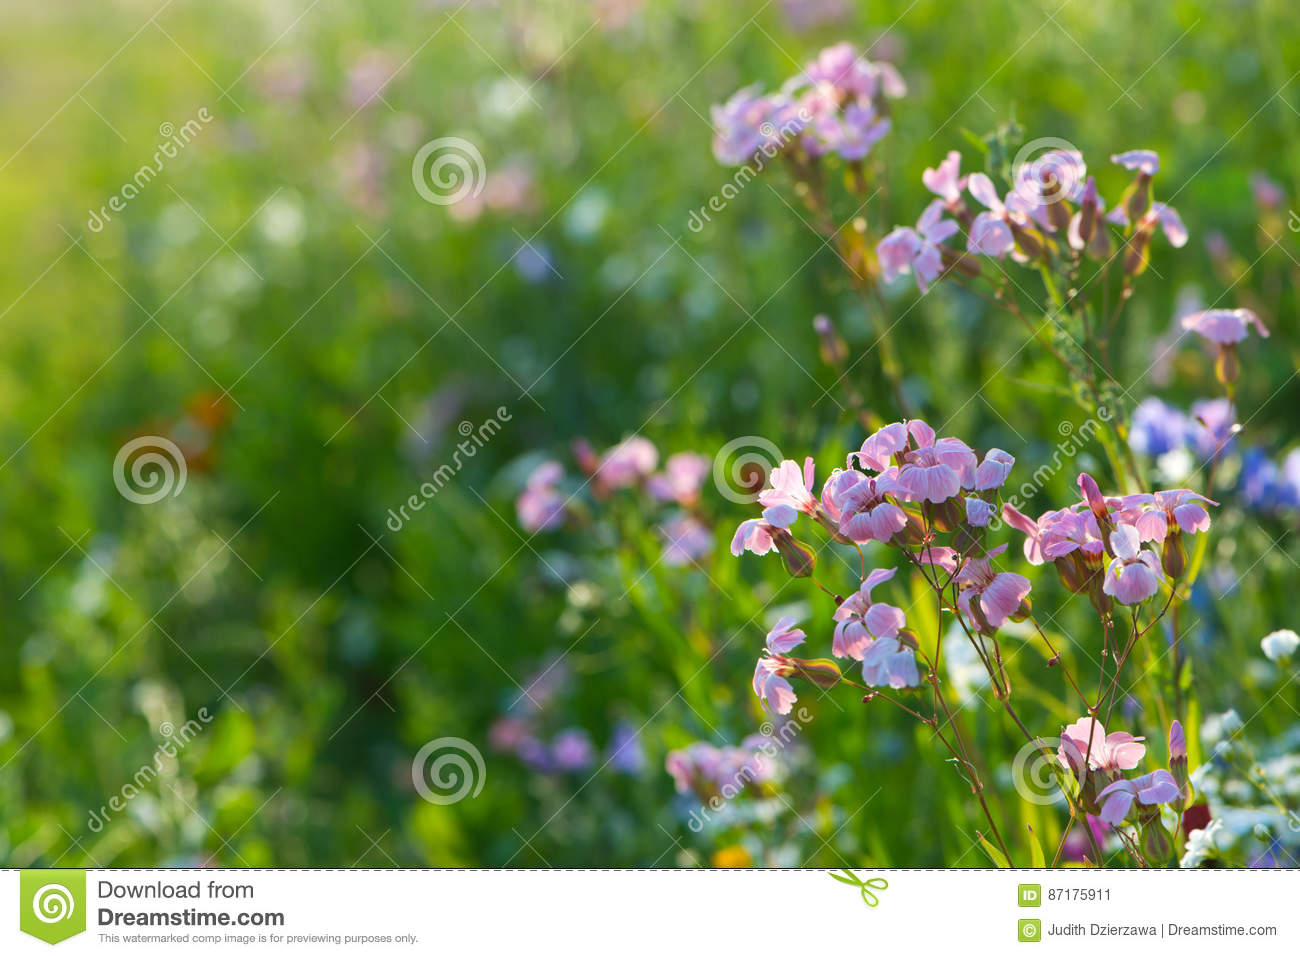 fleurs sauvages roses photo stock - image: 87175911